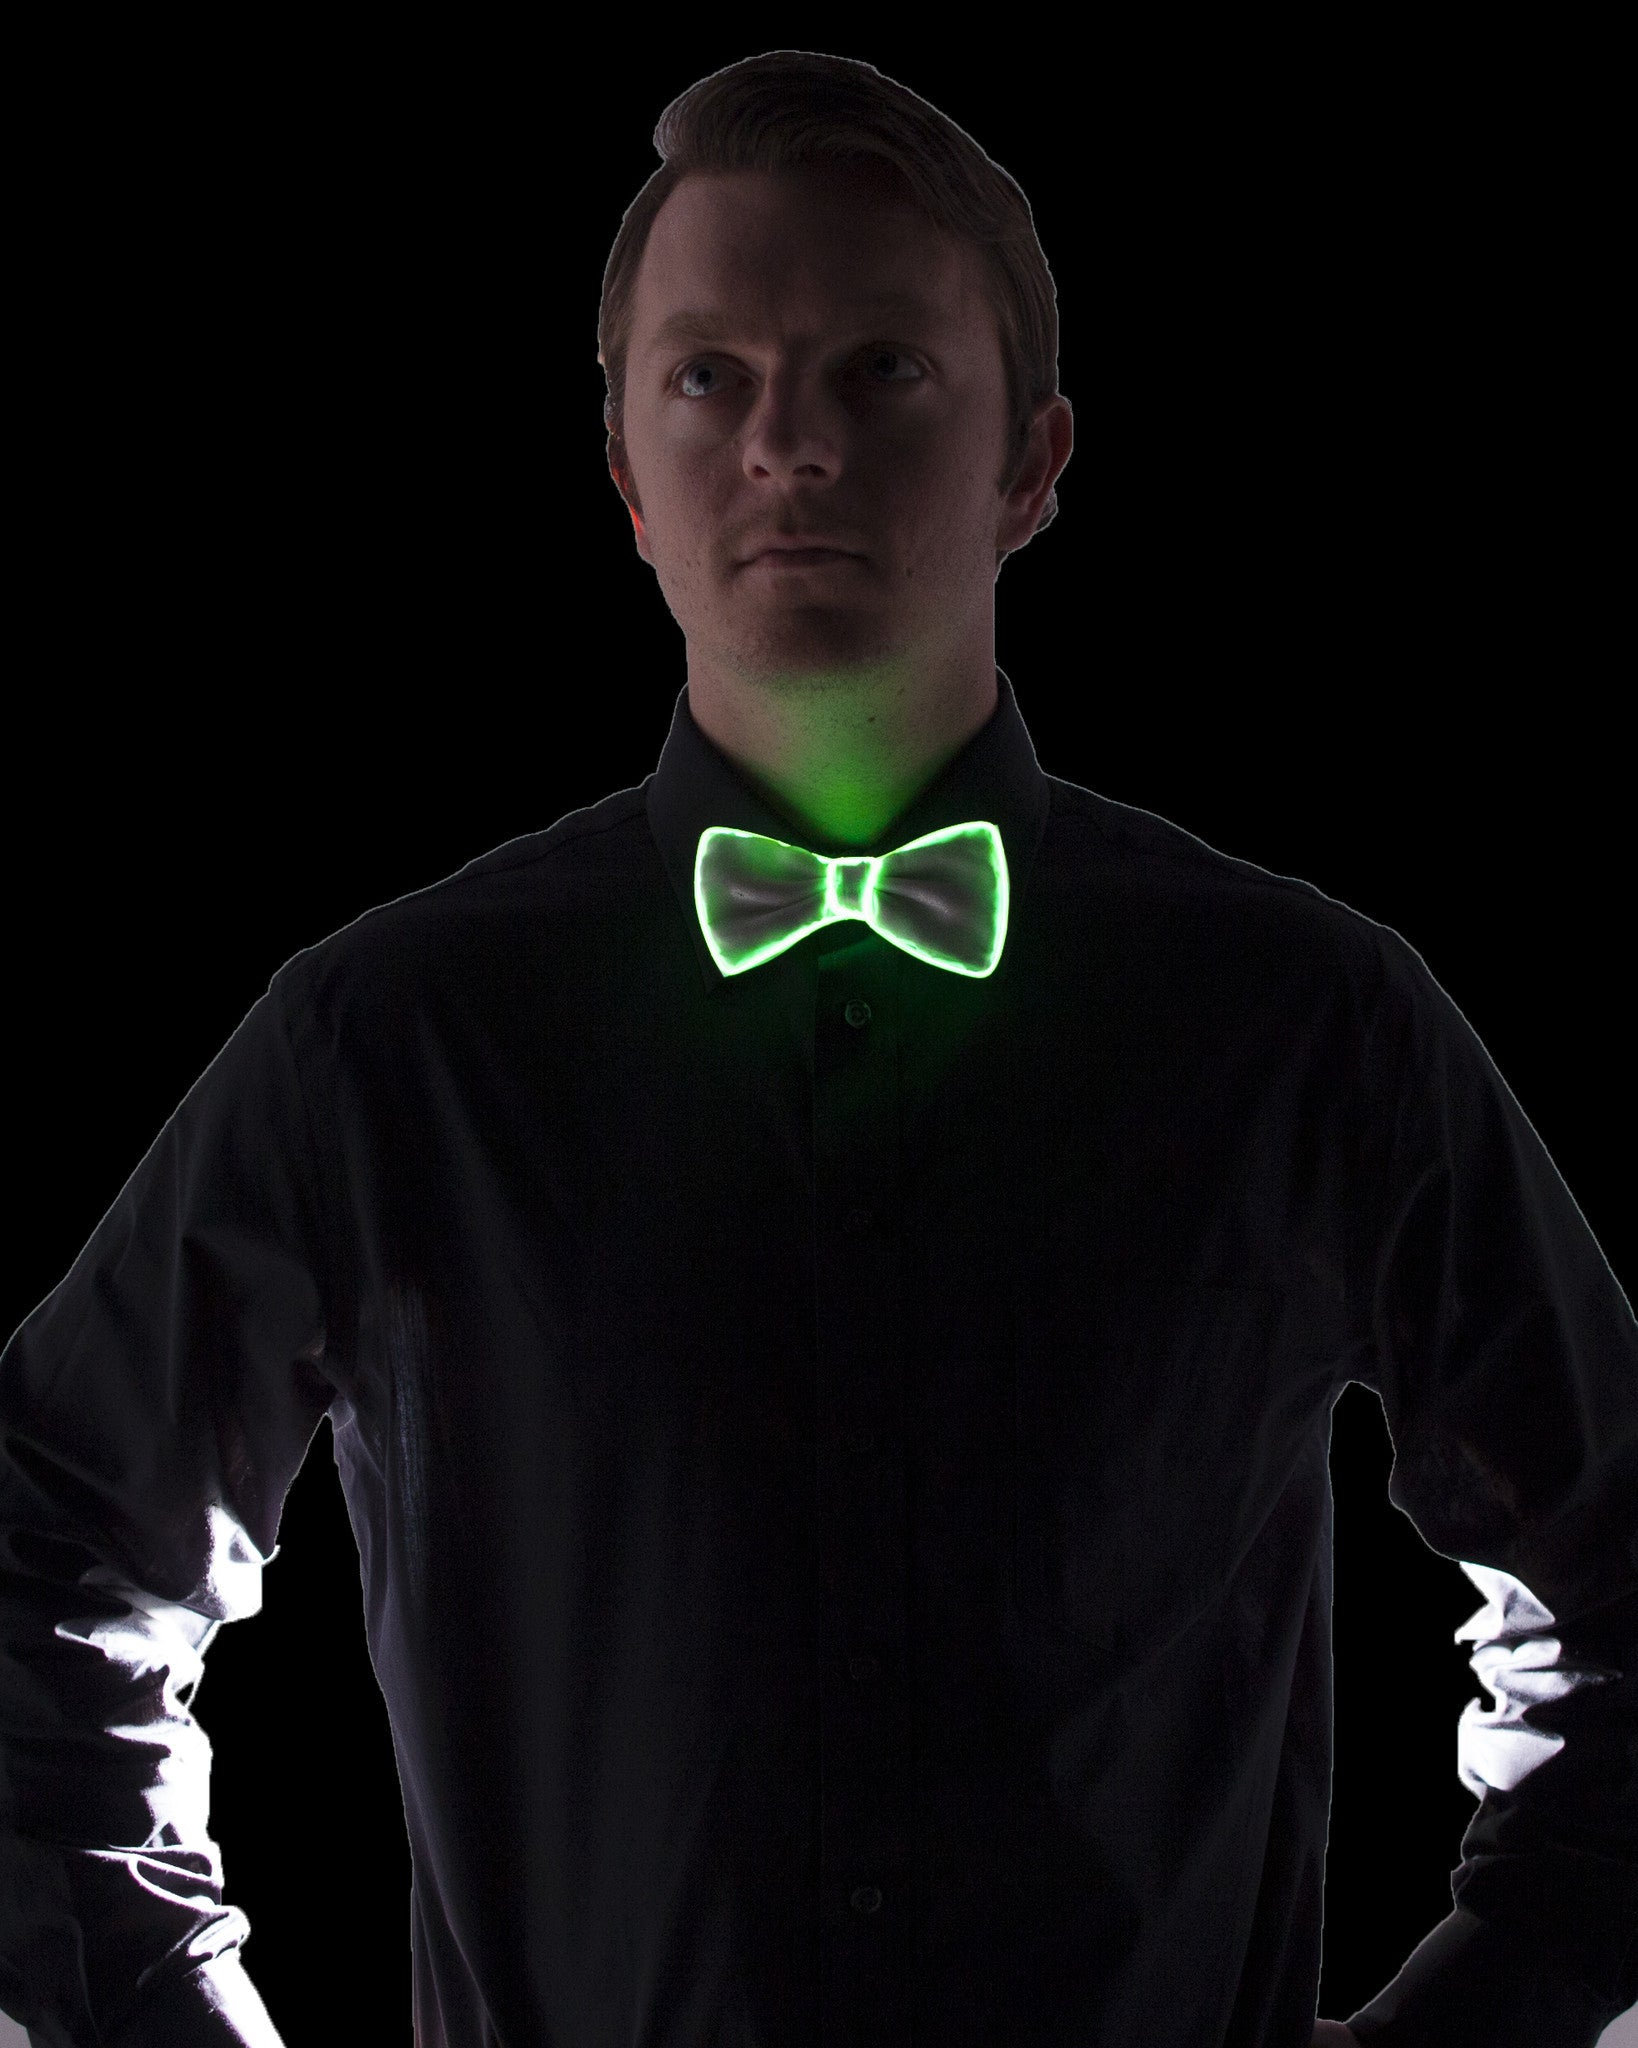 White Light Up Bow Tie - Electric Styles | World's Number 1 Light Up Shoe Store - {product_type}} - Green - 5